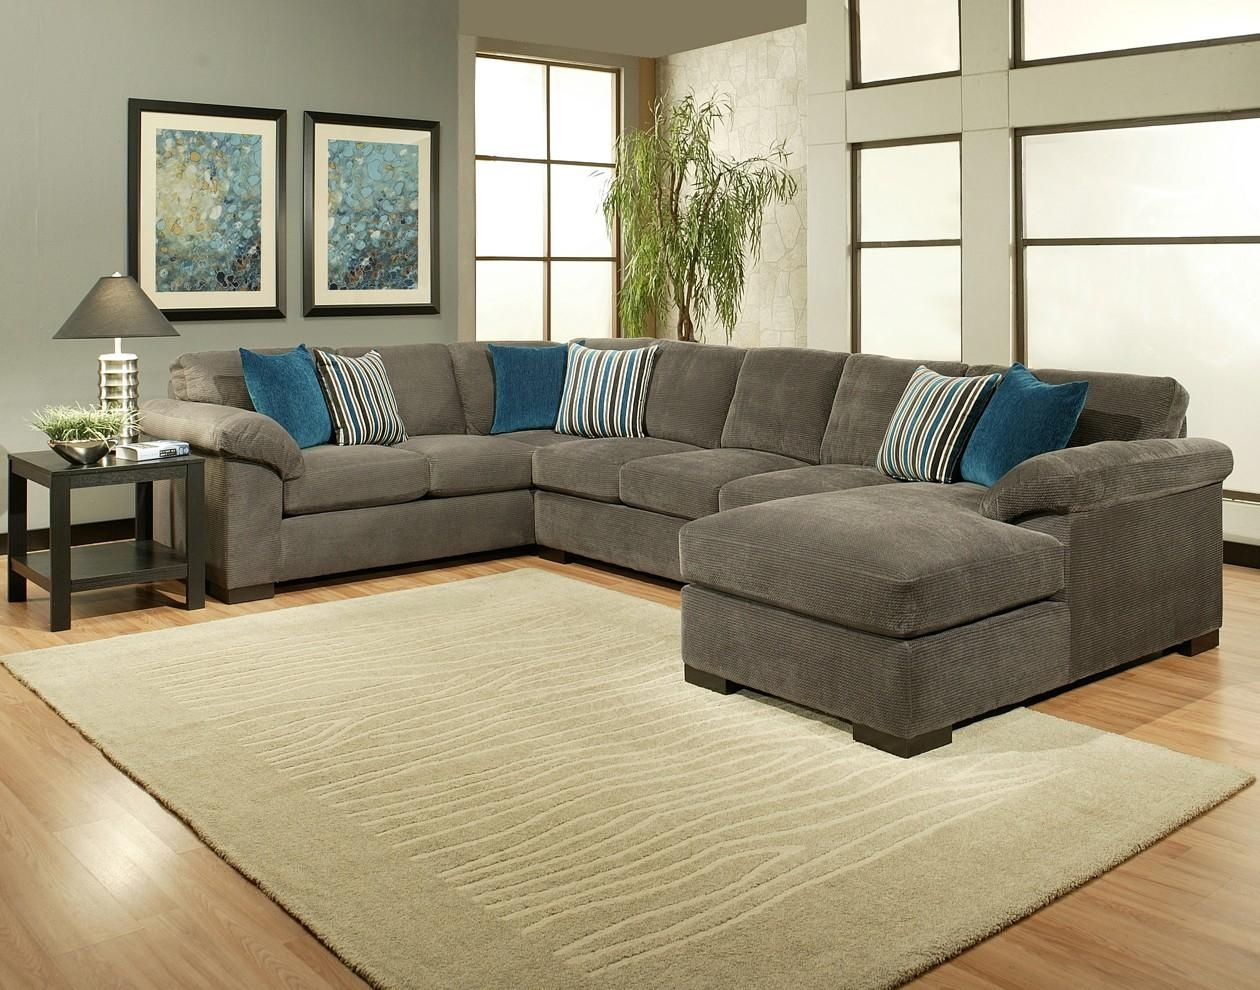 Industries 3 Pc Fire Fly Sectional Sofa In Sealy Sofas (Image 5 of 20) : sealy sectional - Sectionals, Sofas & Couches